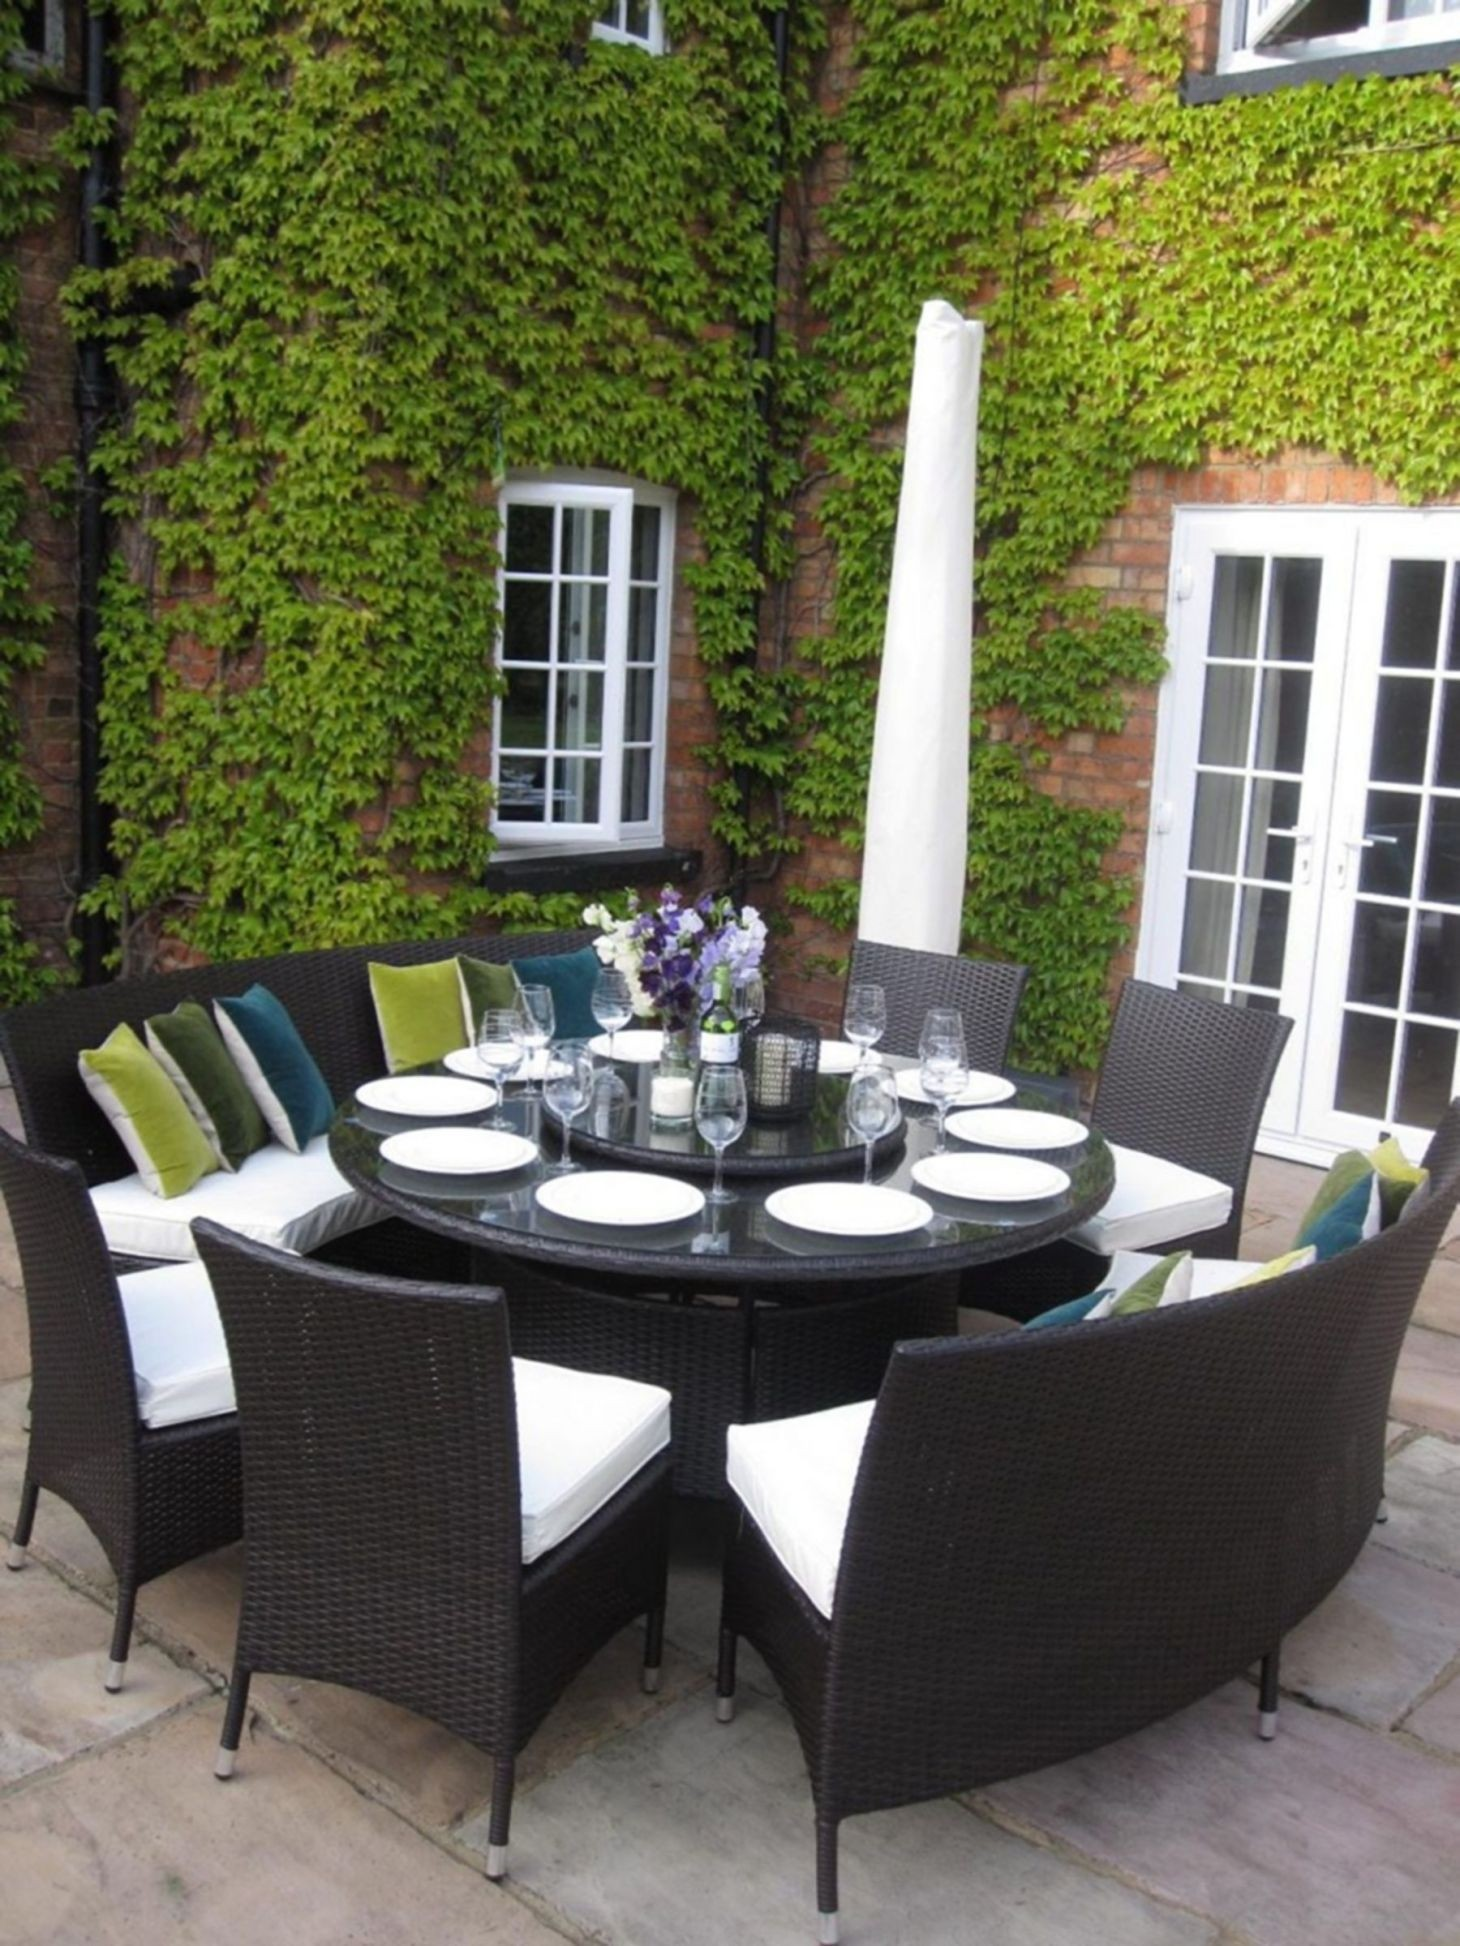 Large Round Dining Table Benches And Chairs Rattan Garden Furniture